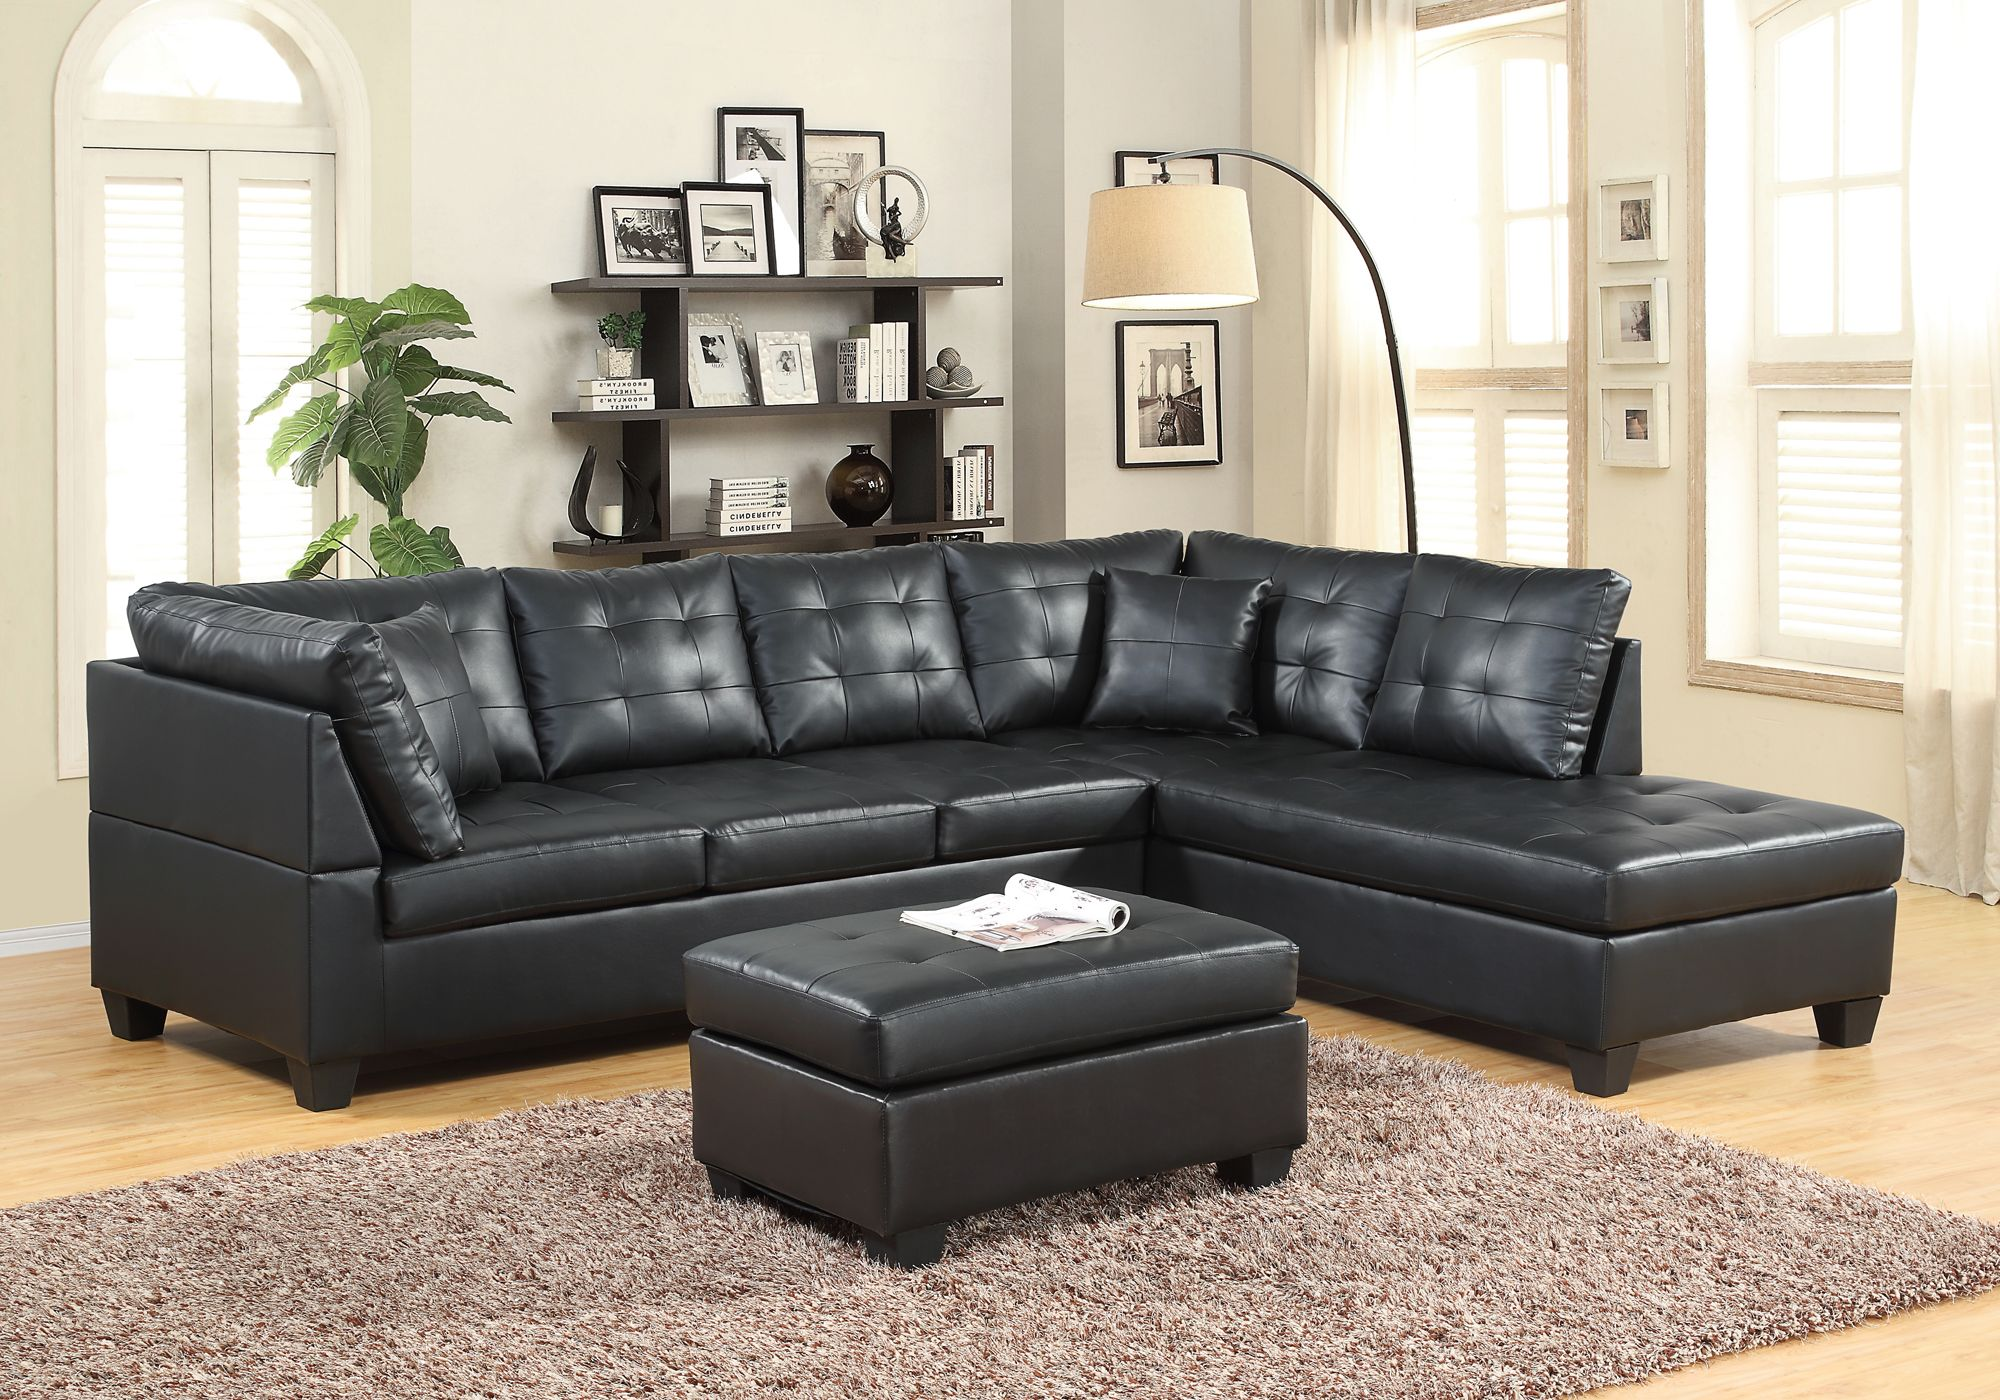 Pleasant 5020 Black Leather Like Sectional Discontinued Furniture Pdpeps Interior Chair Design Pdpepsorg